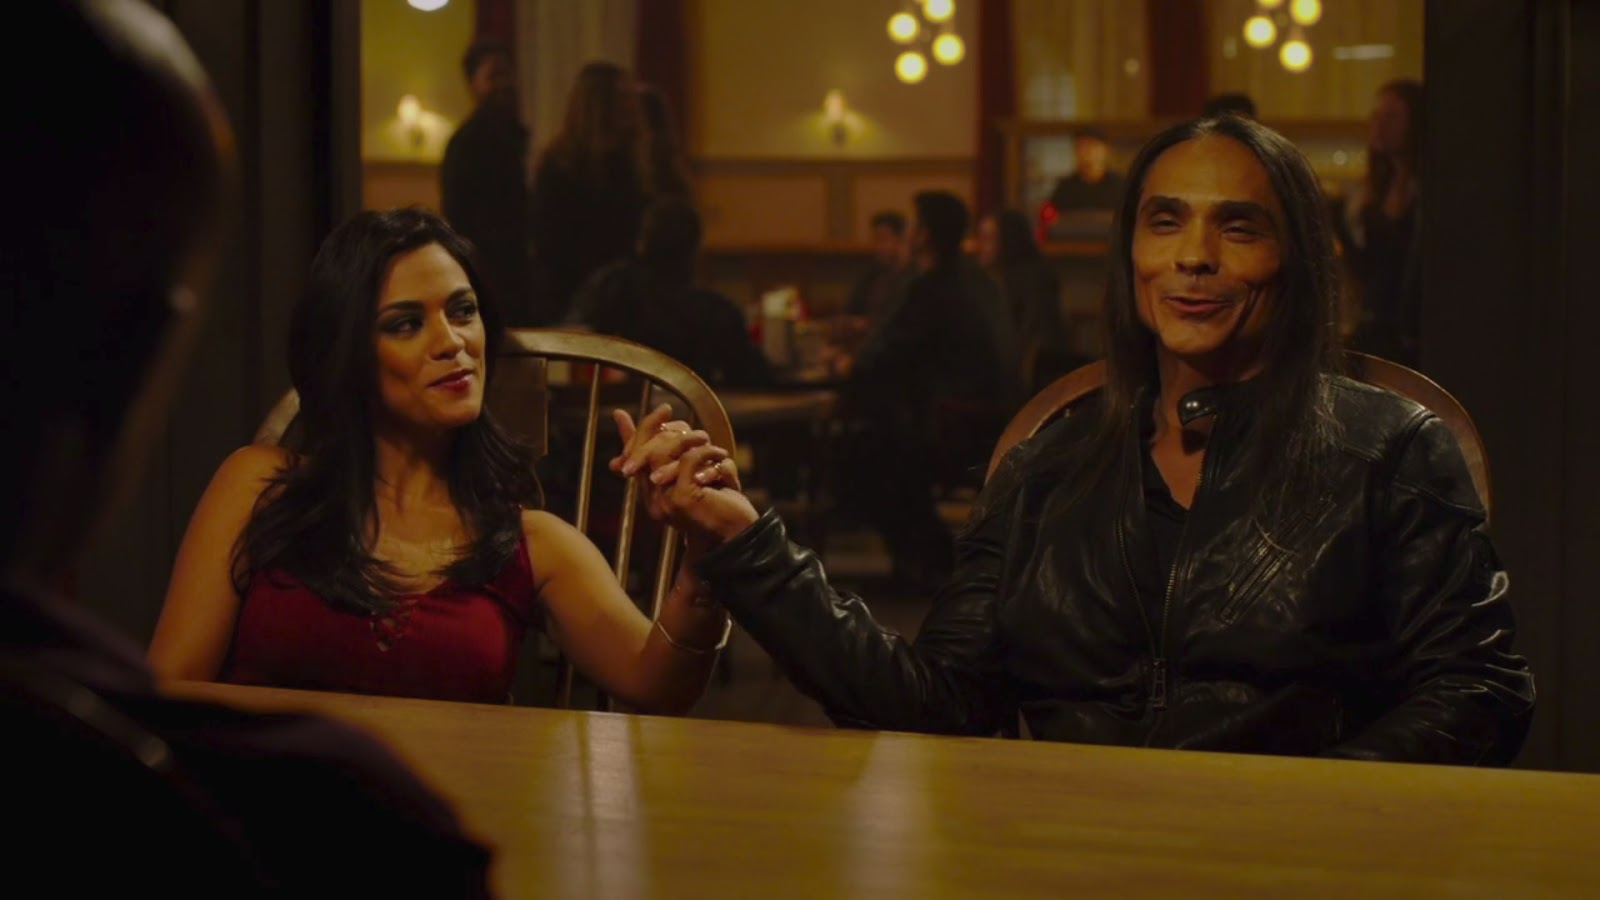 Recap Lab Midnight Texas Season 1 Episode 3 Lemuel Unchained Lem 401 Had Enough Of Killing In An Effort To Cheer Him Up Zachariah And His Girlfriend Pia Procured For A Young Gypsy Xylda